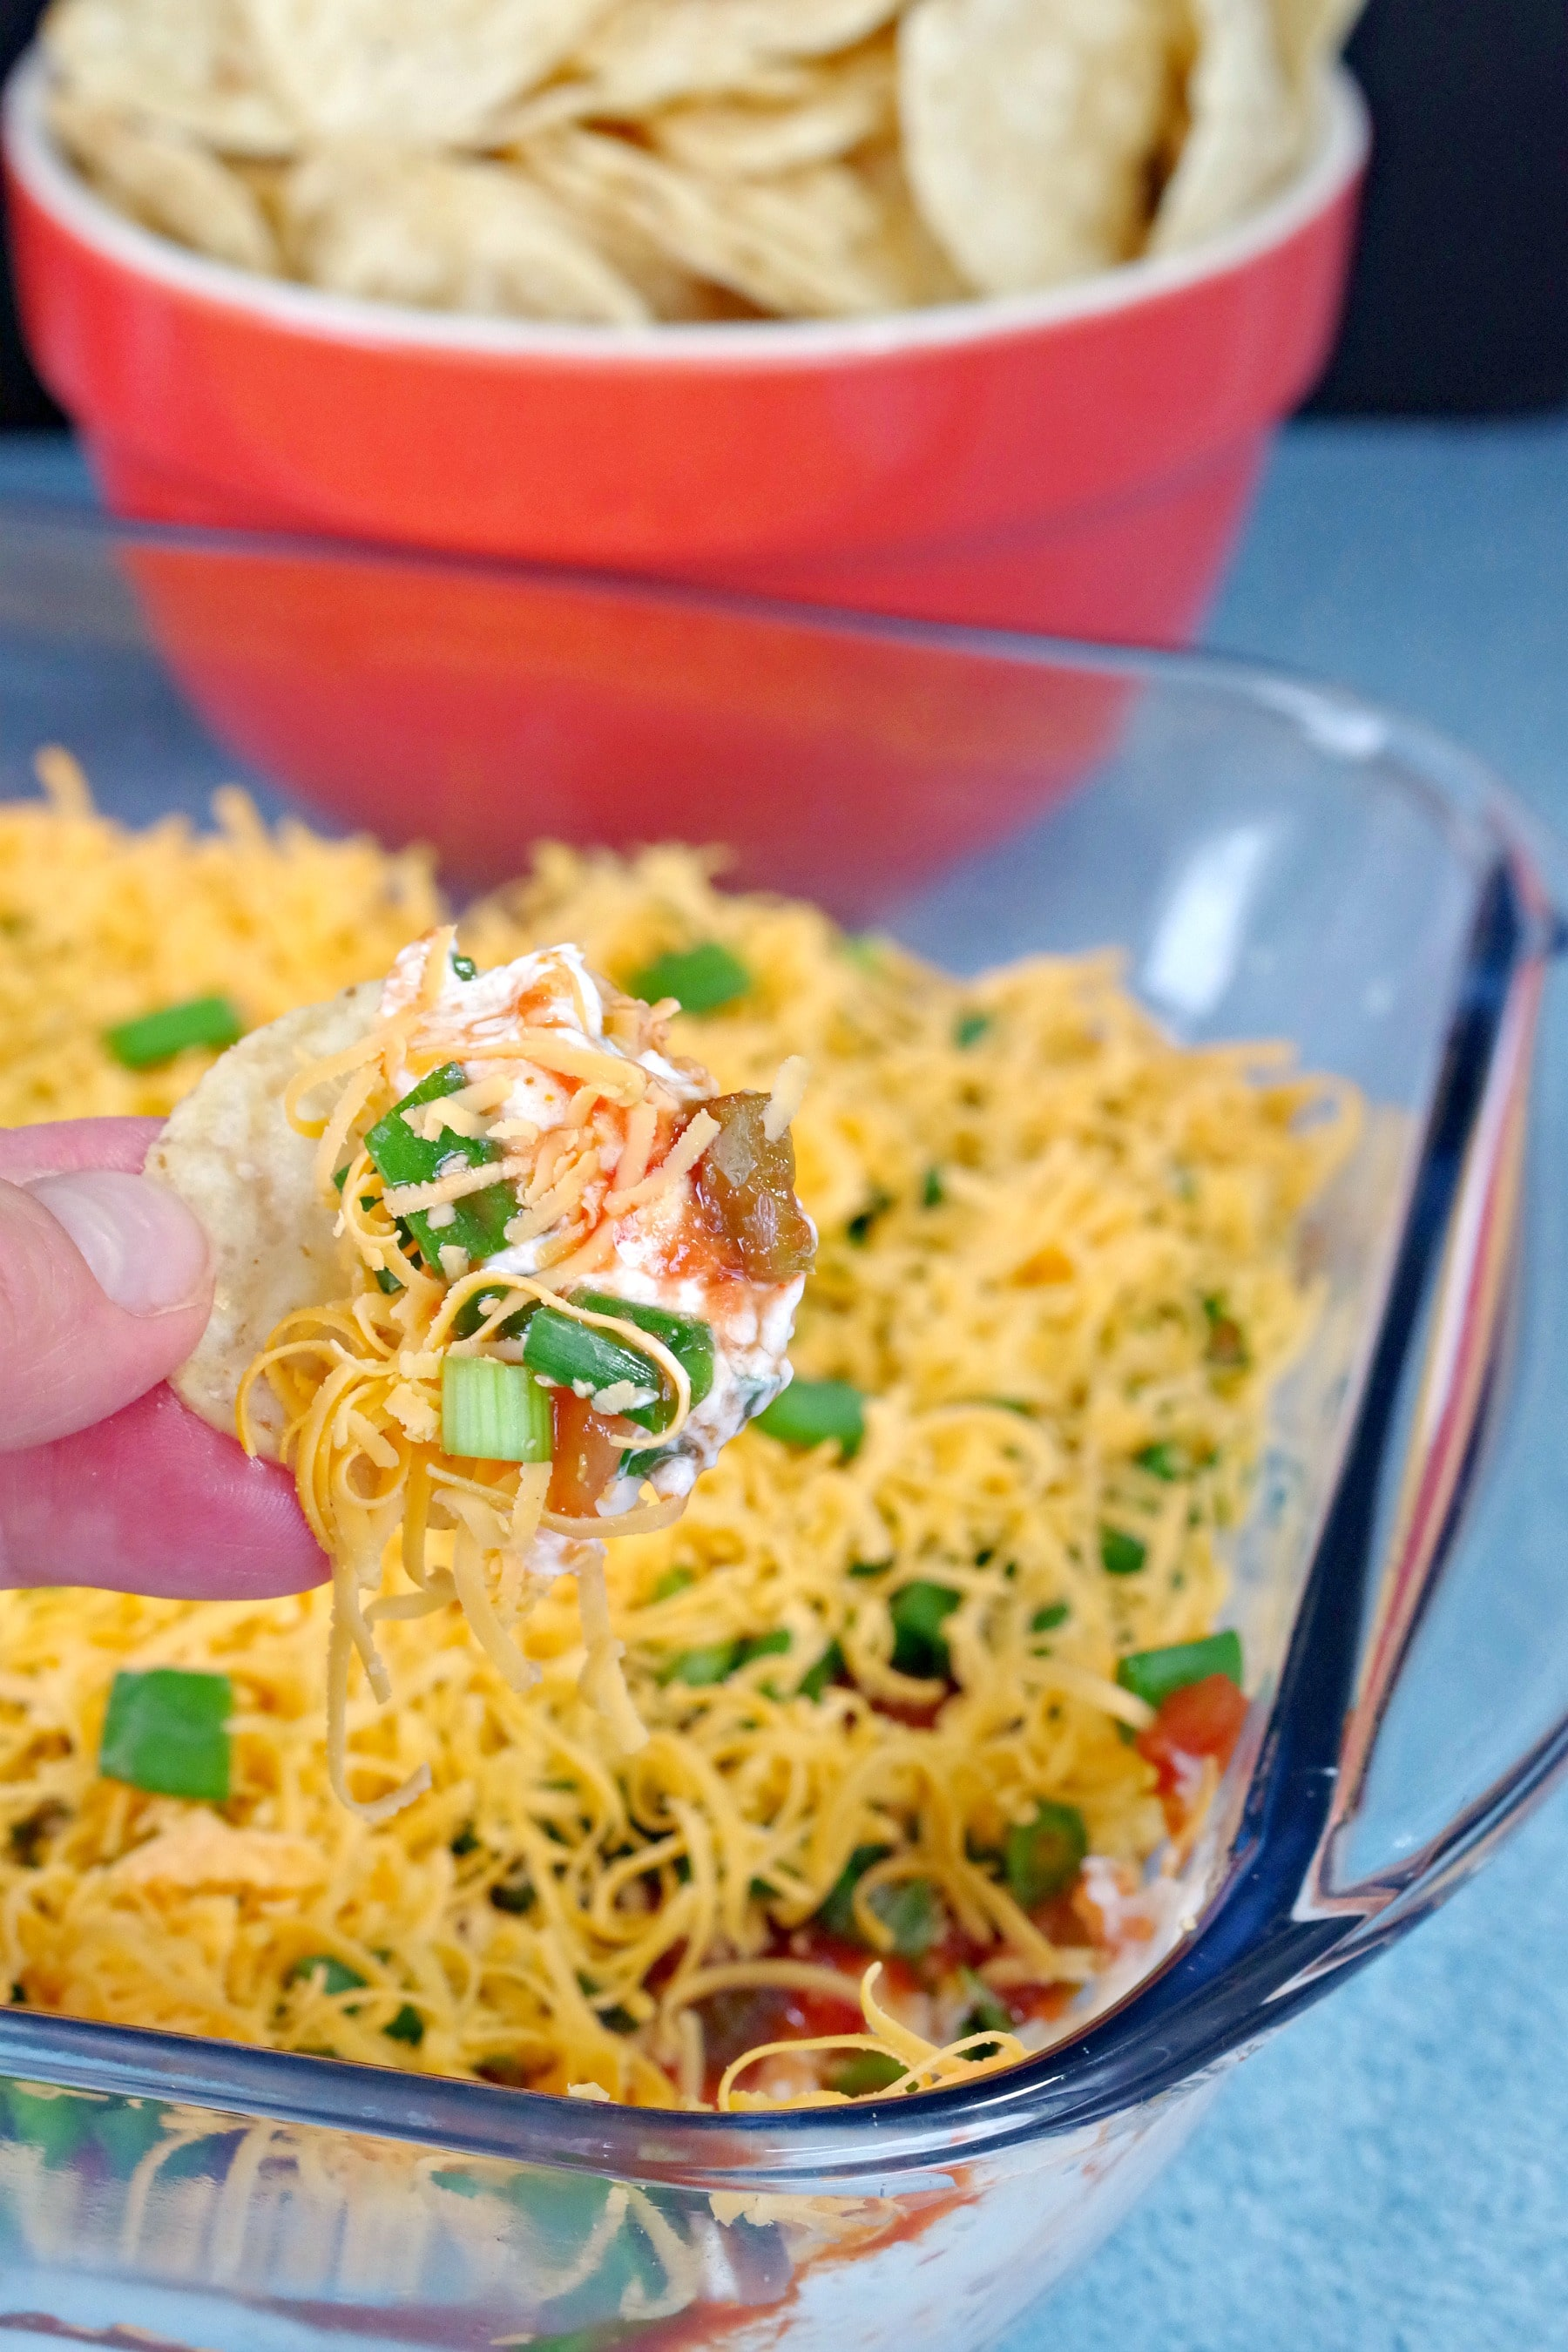 chip being dipped into layered nacho/taco dip